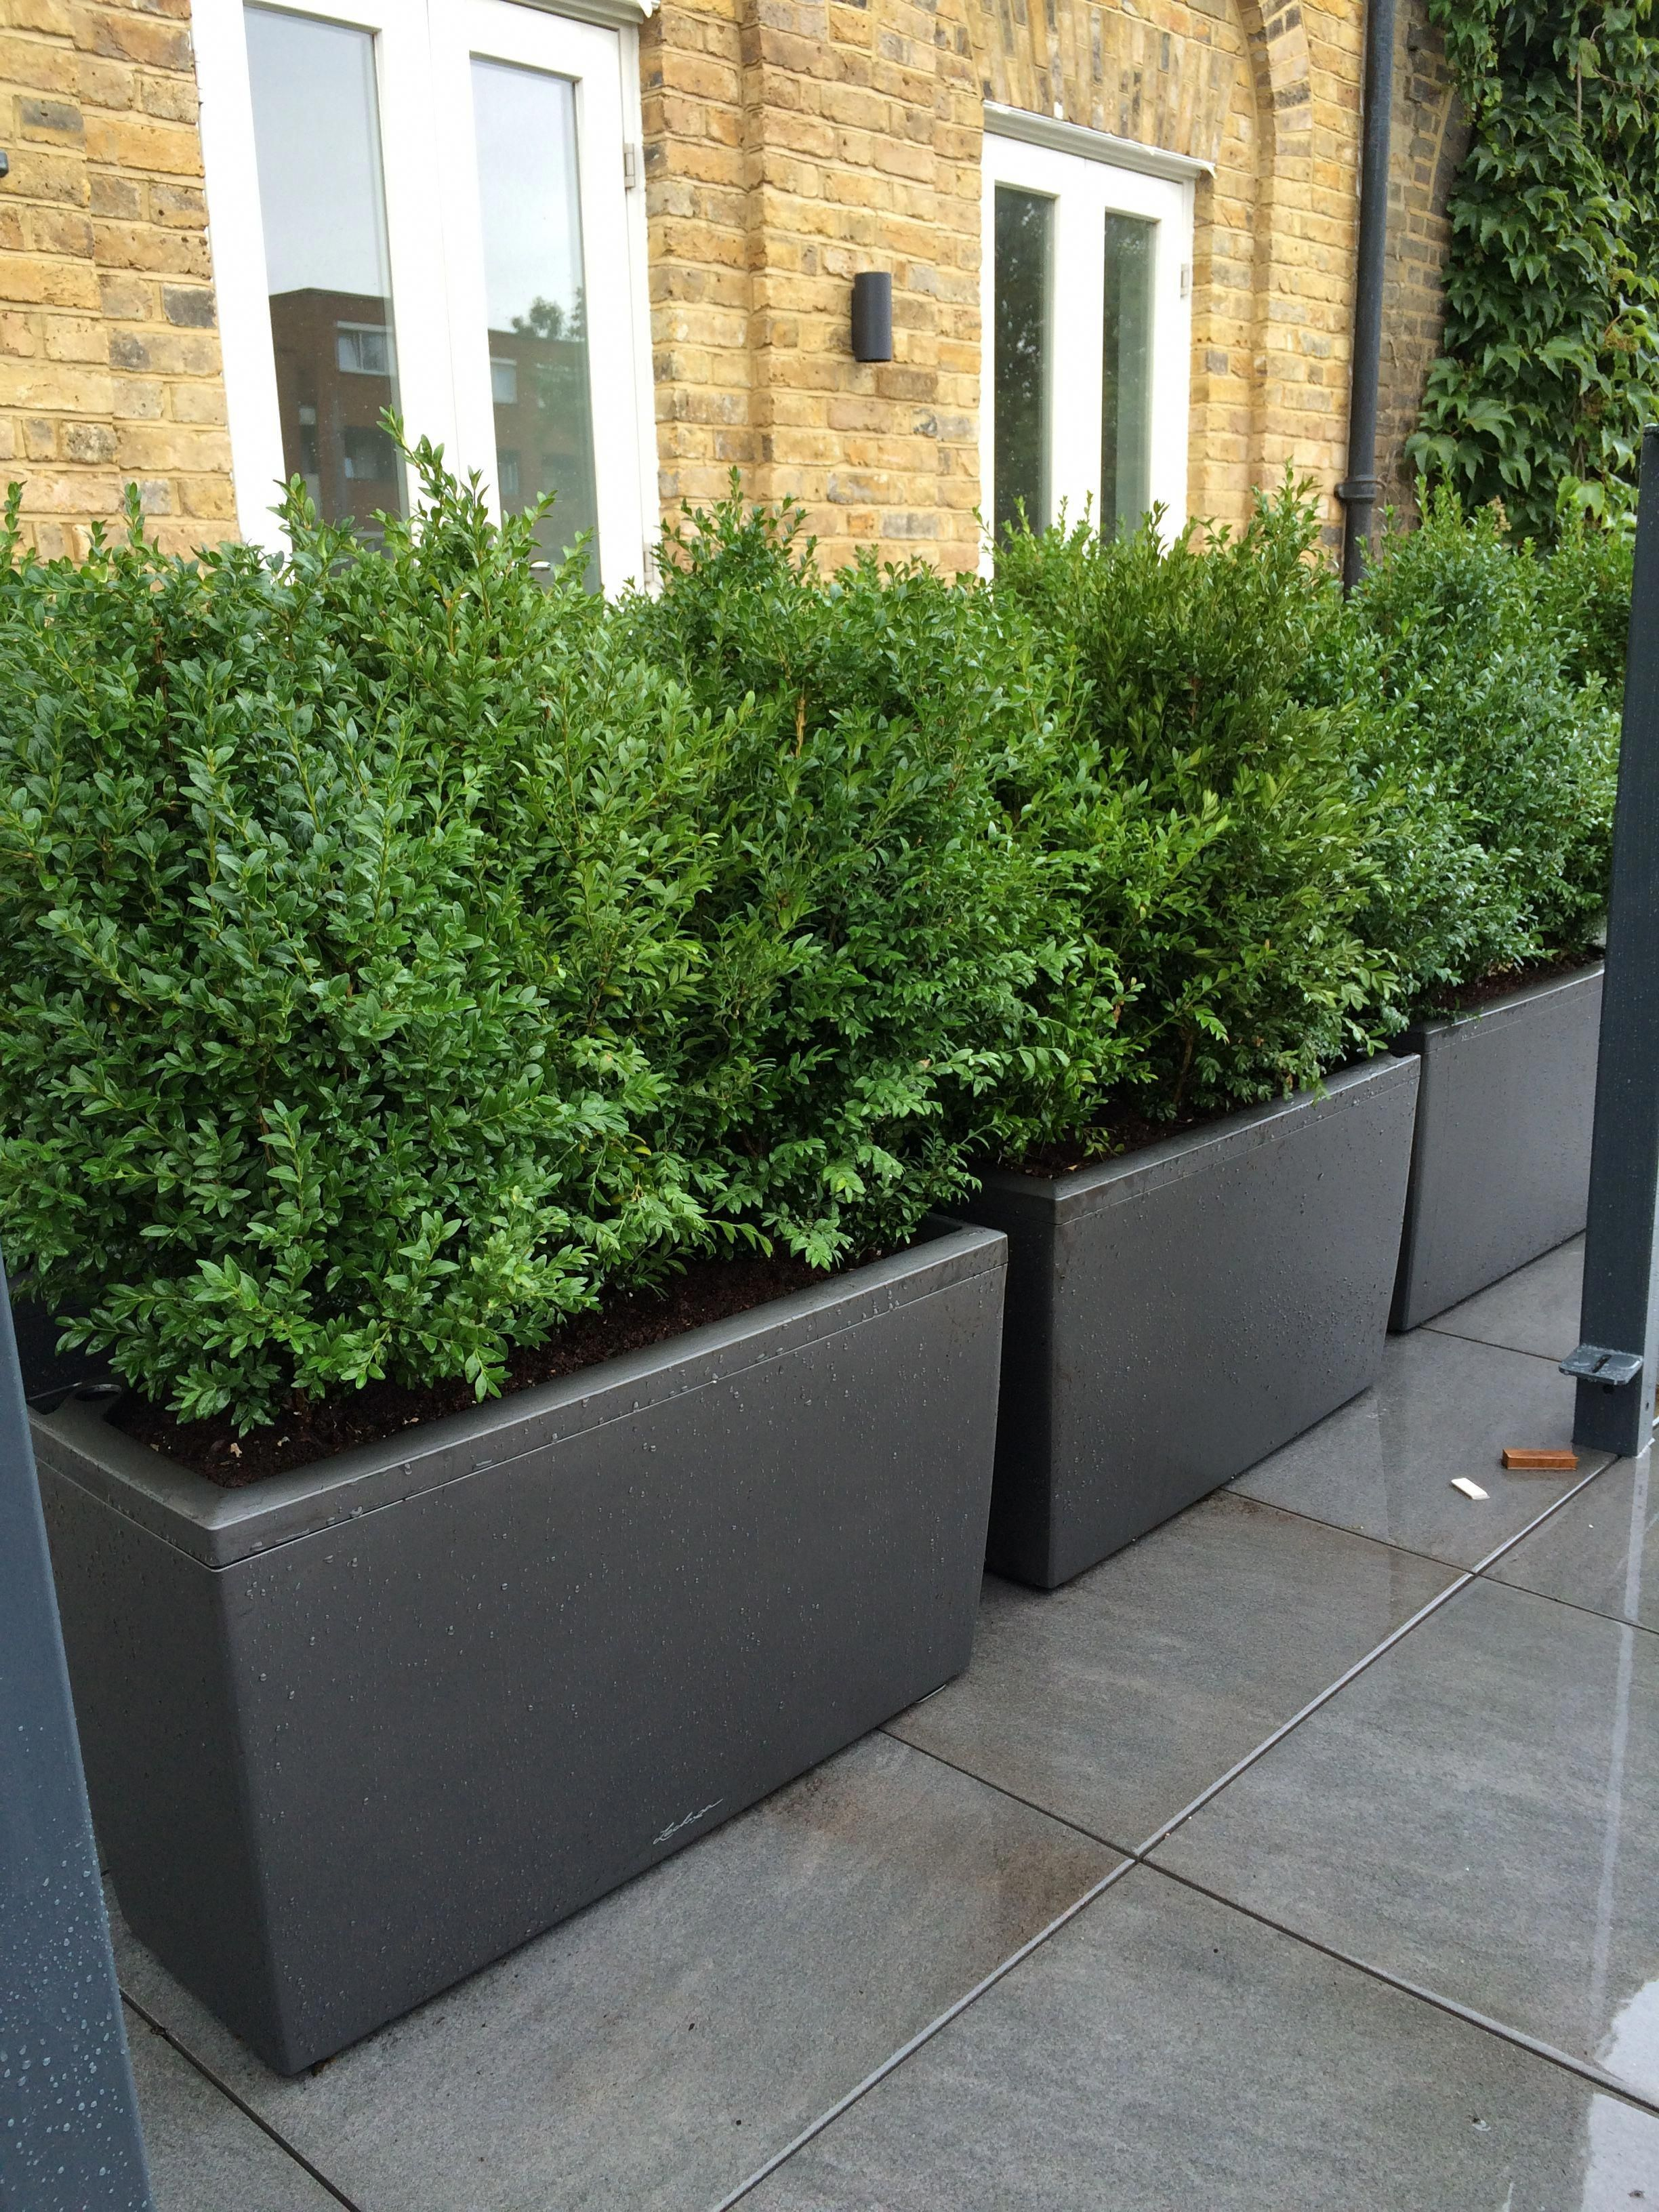 Natural Buxus Planted In Barrier Planters To Create Natural Green Hedge Fence Be Natural Buxus P En 2020 Amenagement Jardin Terrasse Jardin Bois Pergola Rustique